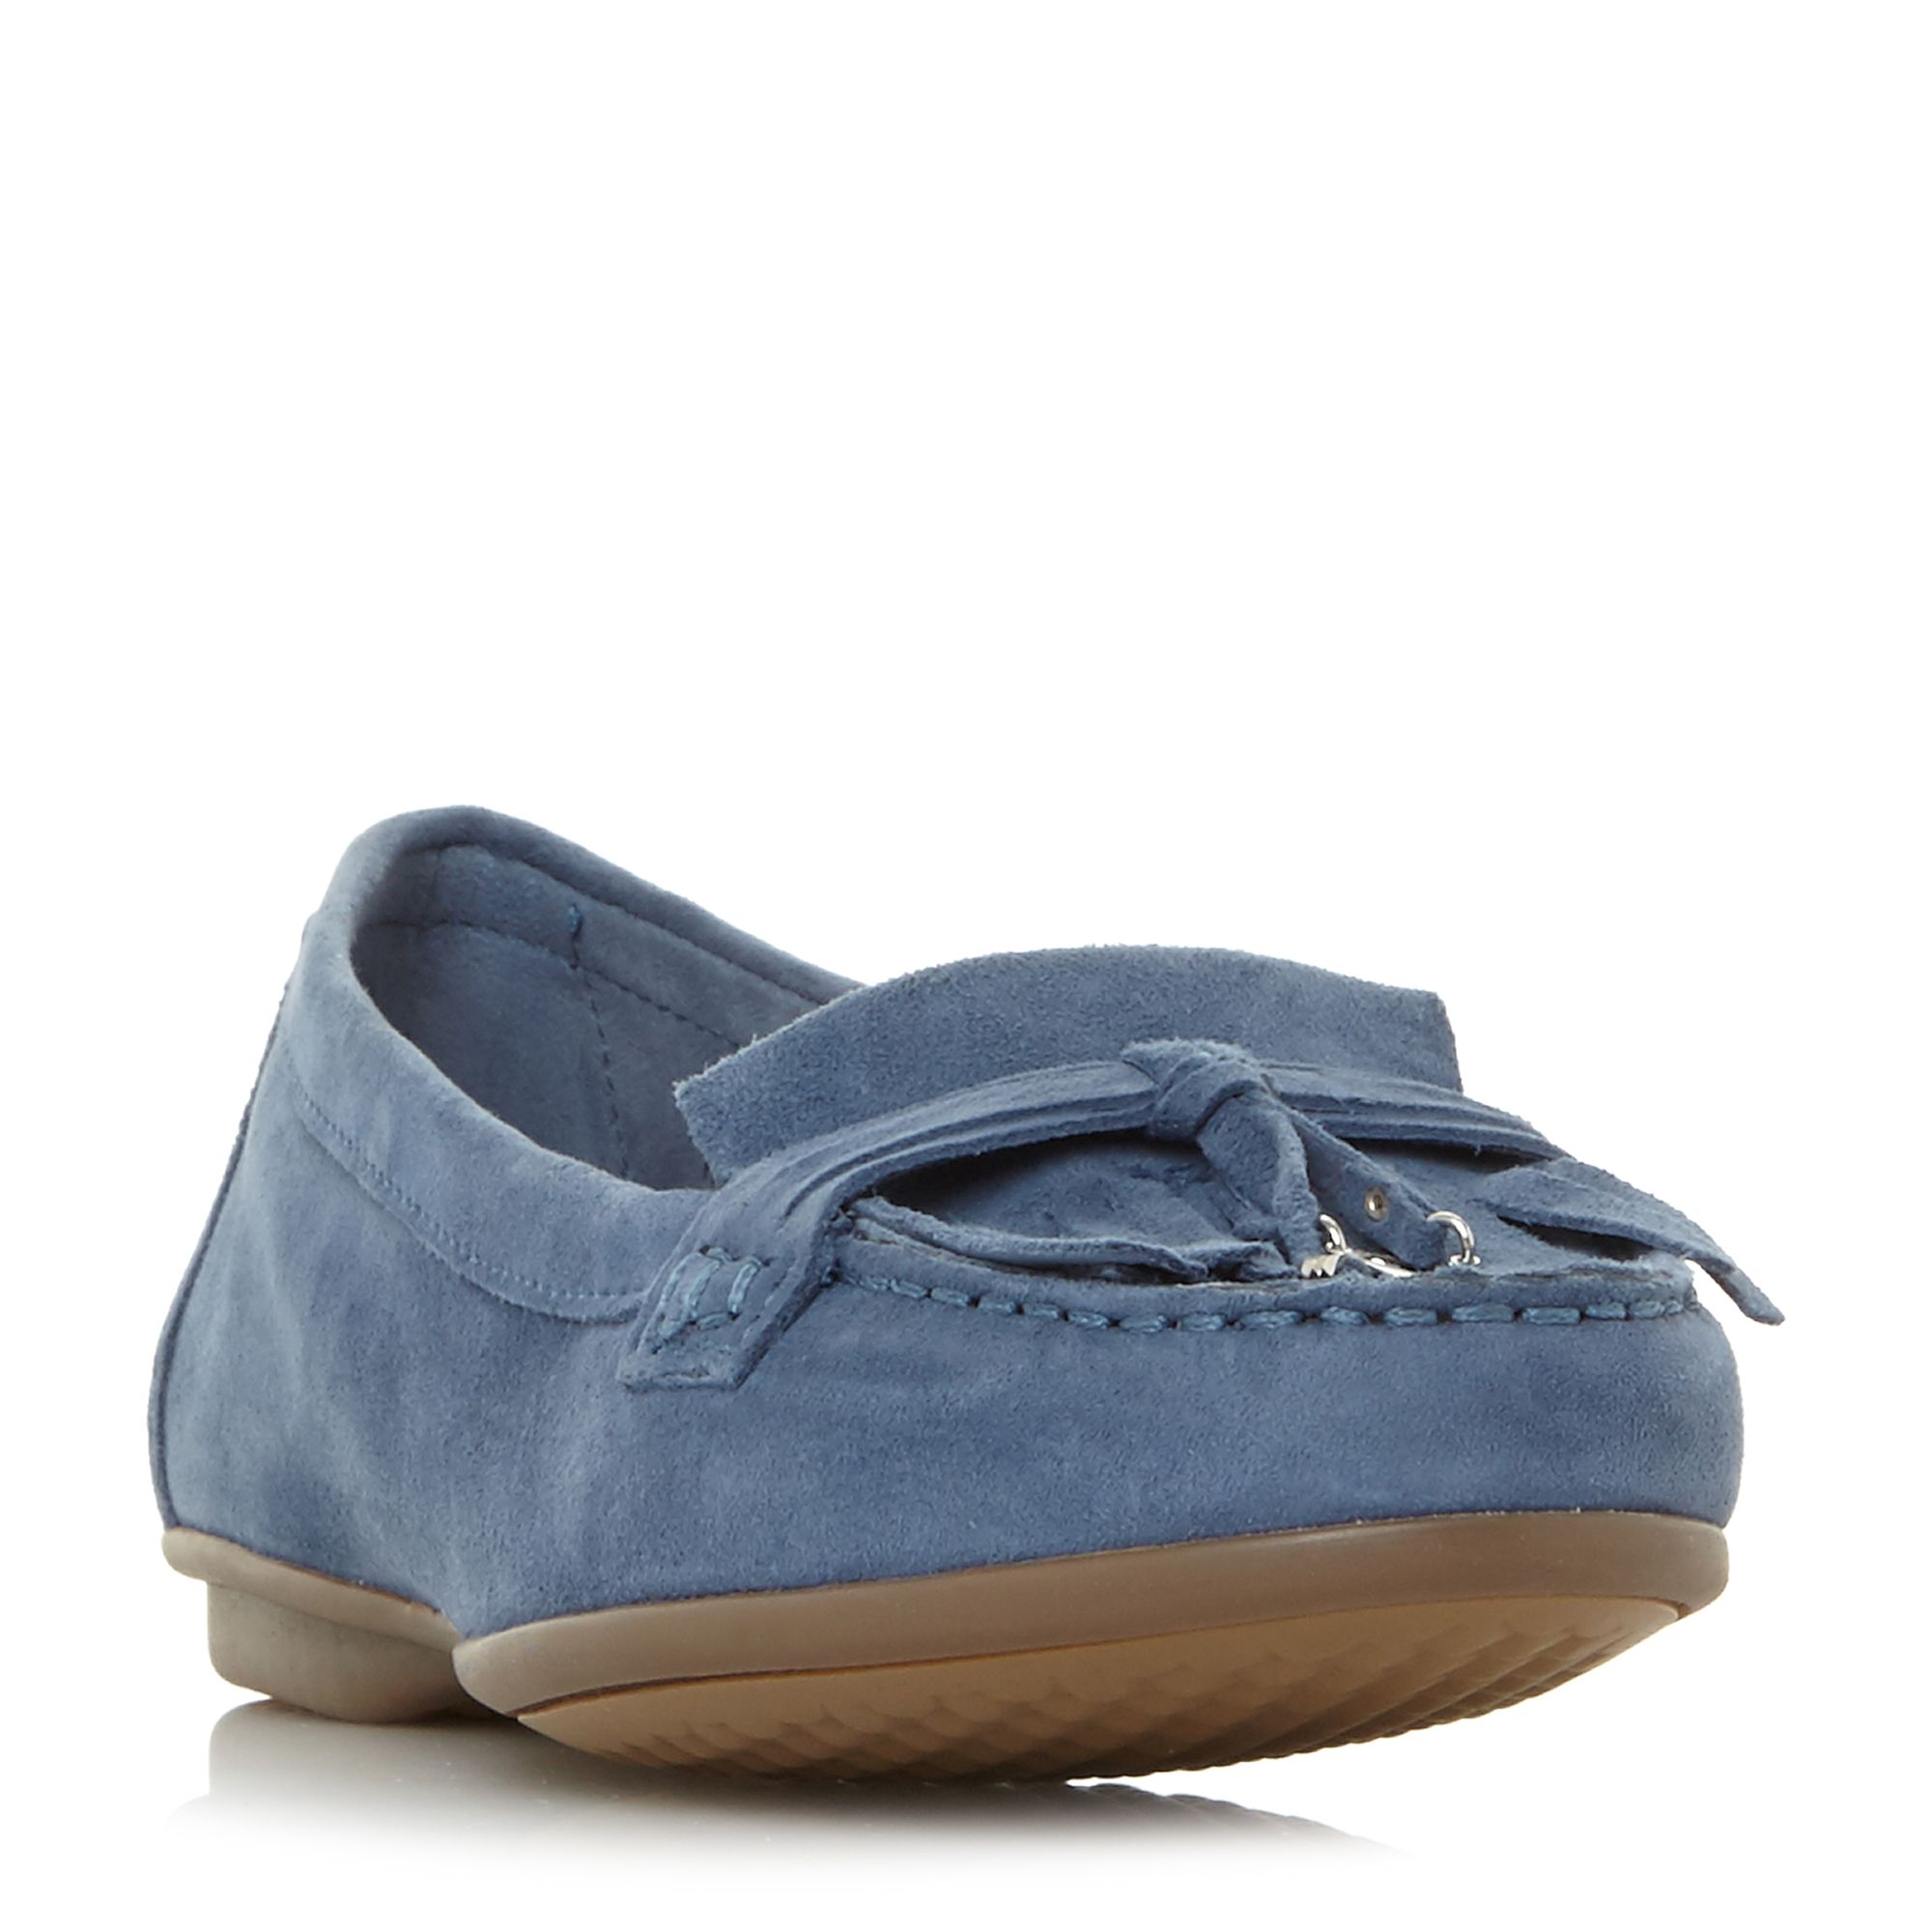 Hush Puppies Naveen Robyn Fringe Tassel Loafer Shoes, Blue